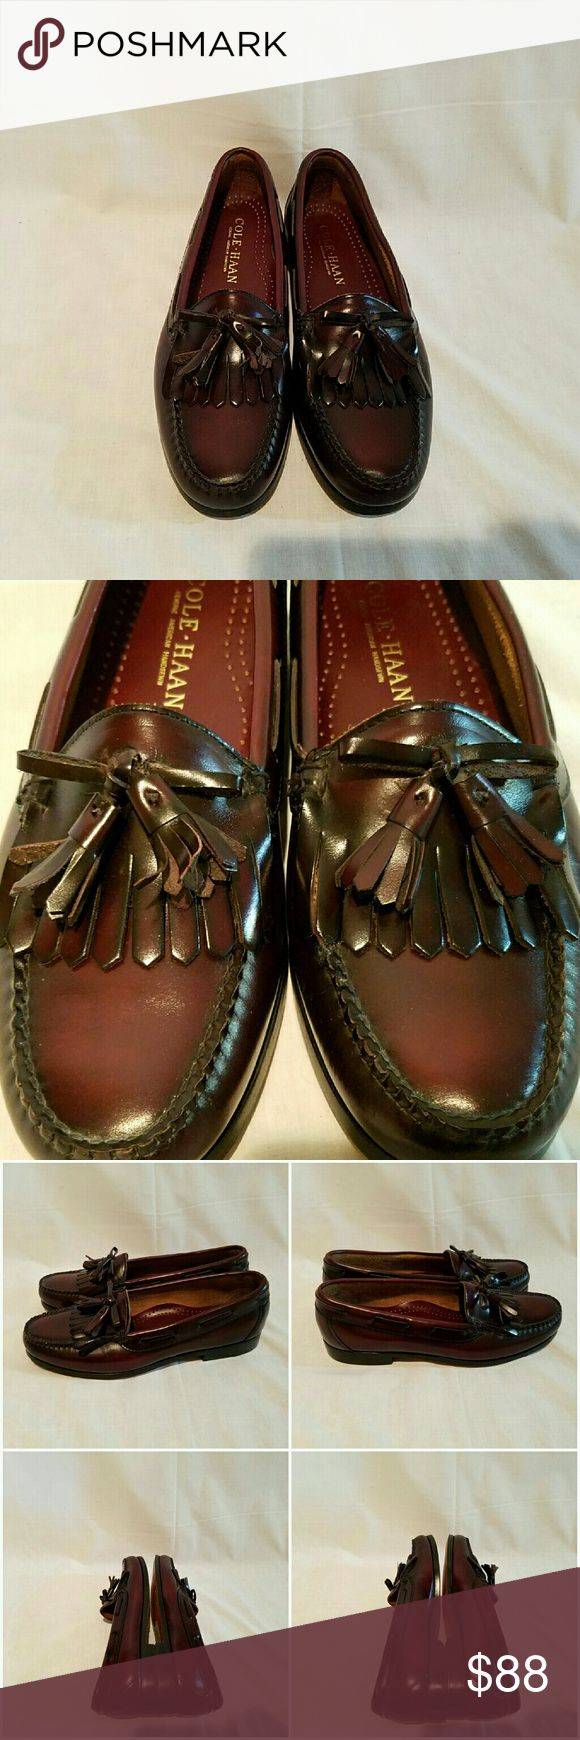 NWOB Cole Haan Tasseled Loafer New men's Cole Haan shoes with leather soles and stacked heels.   Made in USA acbe Cole Haan Shoes Loafers & Slip-Ons